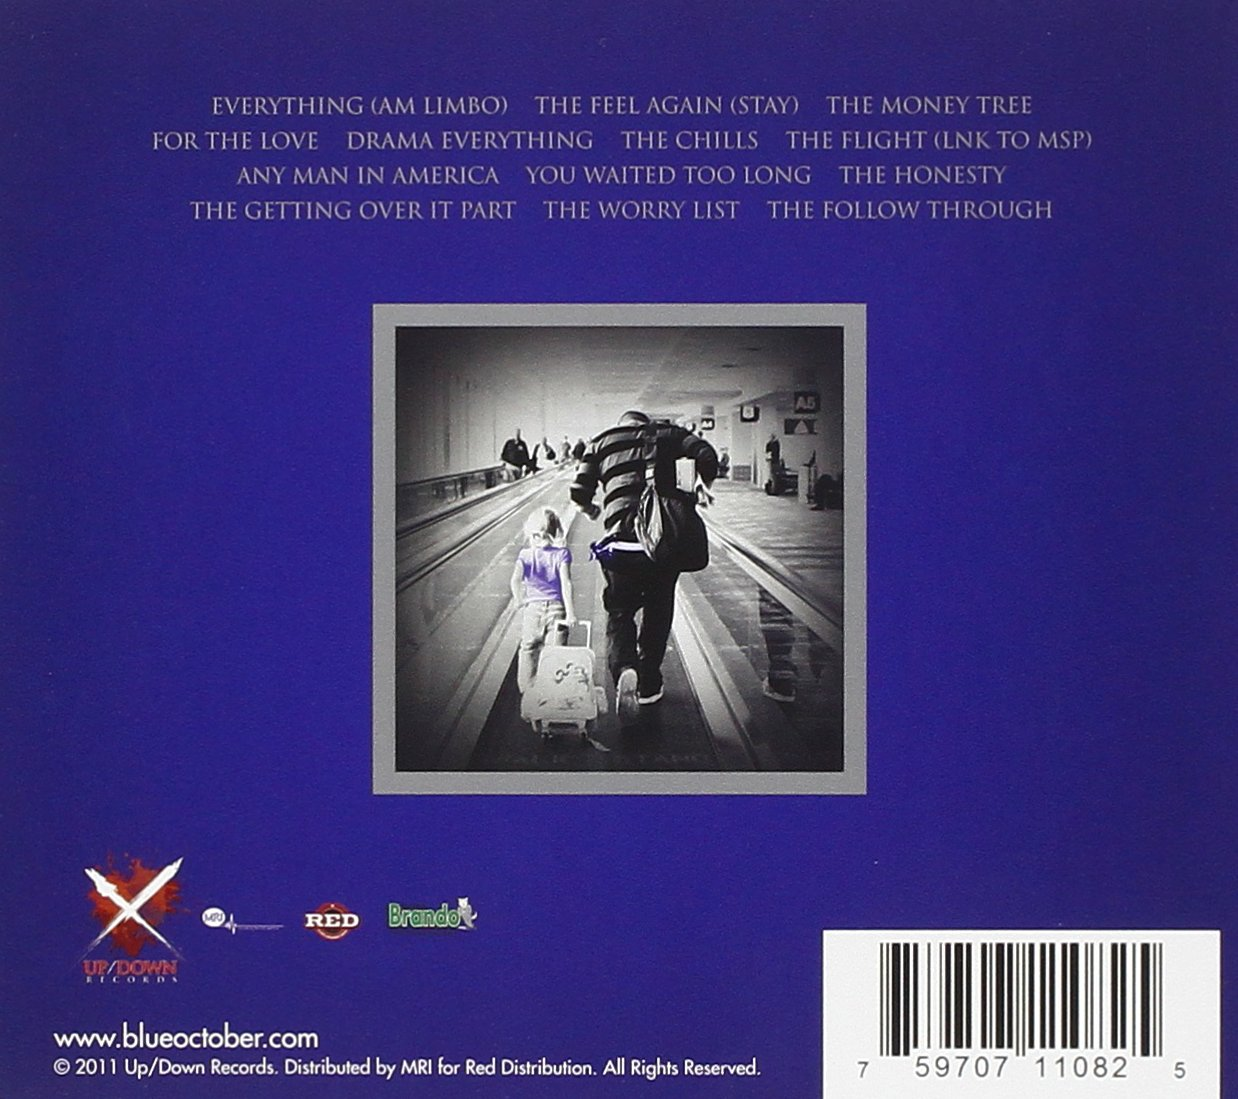 9049e02be99 Blue October - Any Man In America - Amazon.com Music